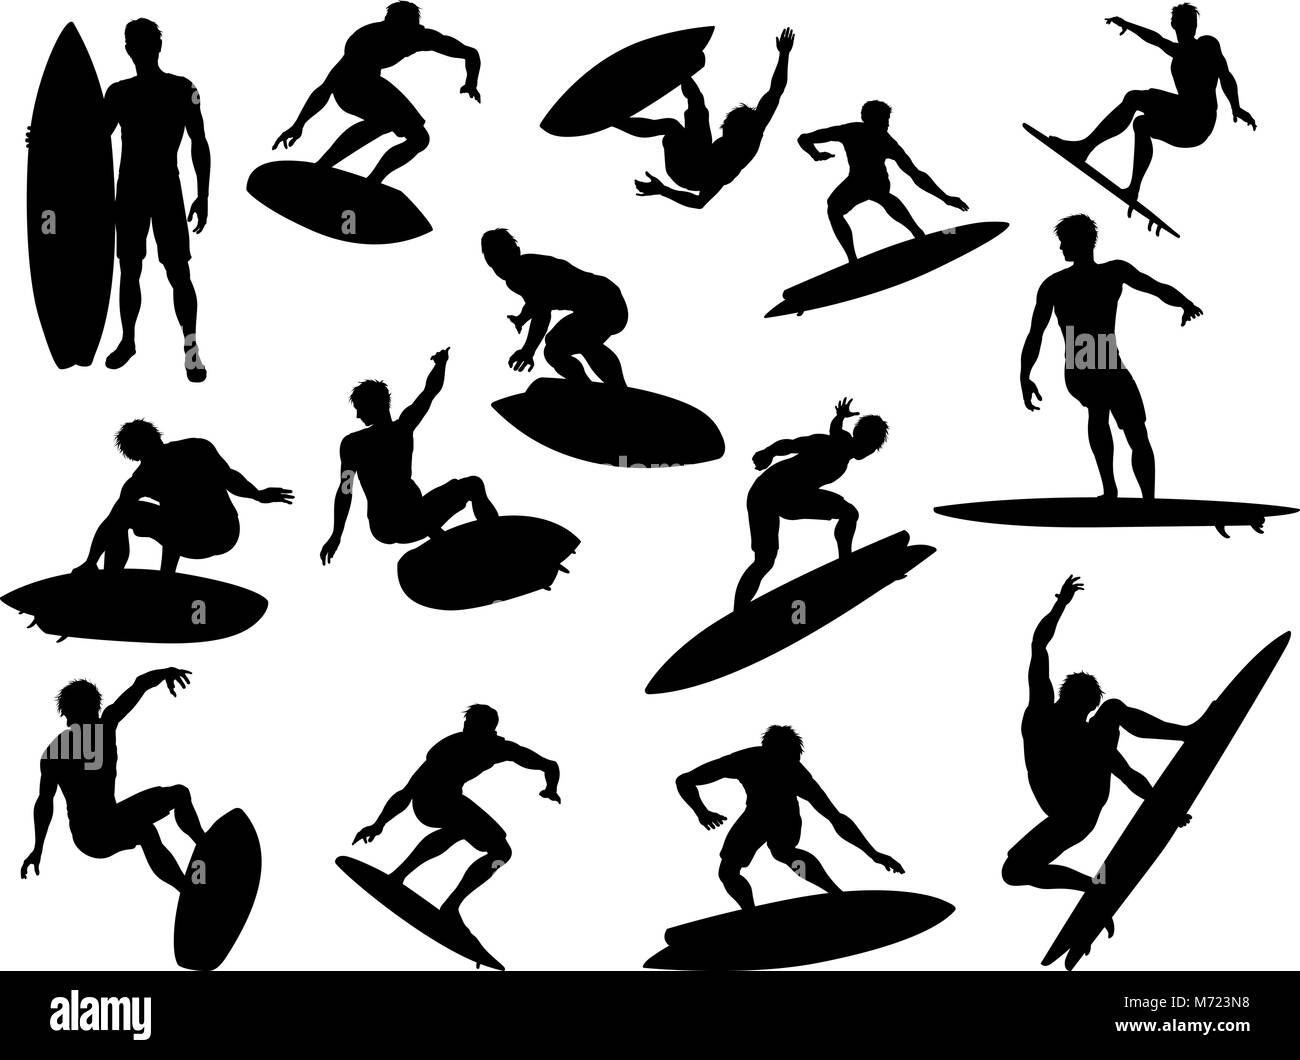 Surfer Silhouette Black And White Stock Photos Images Alamy